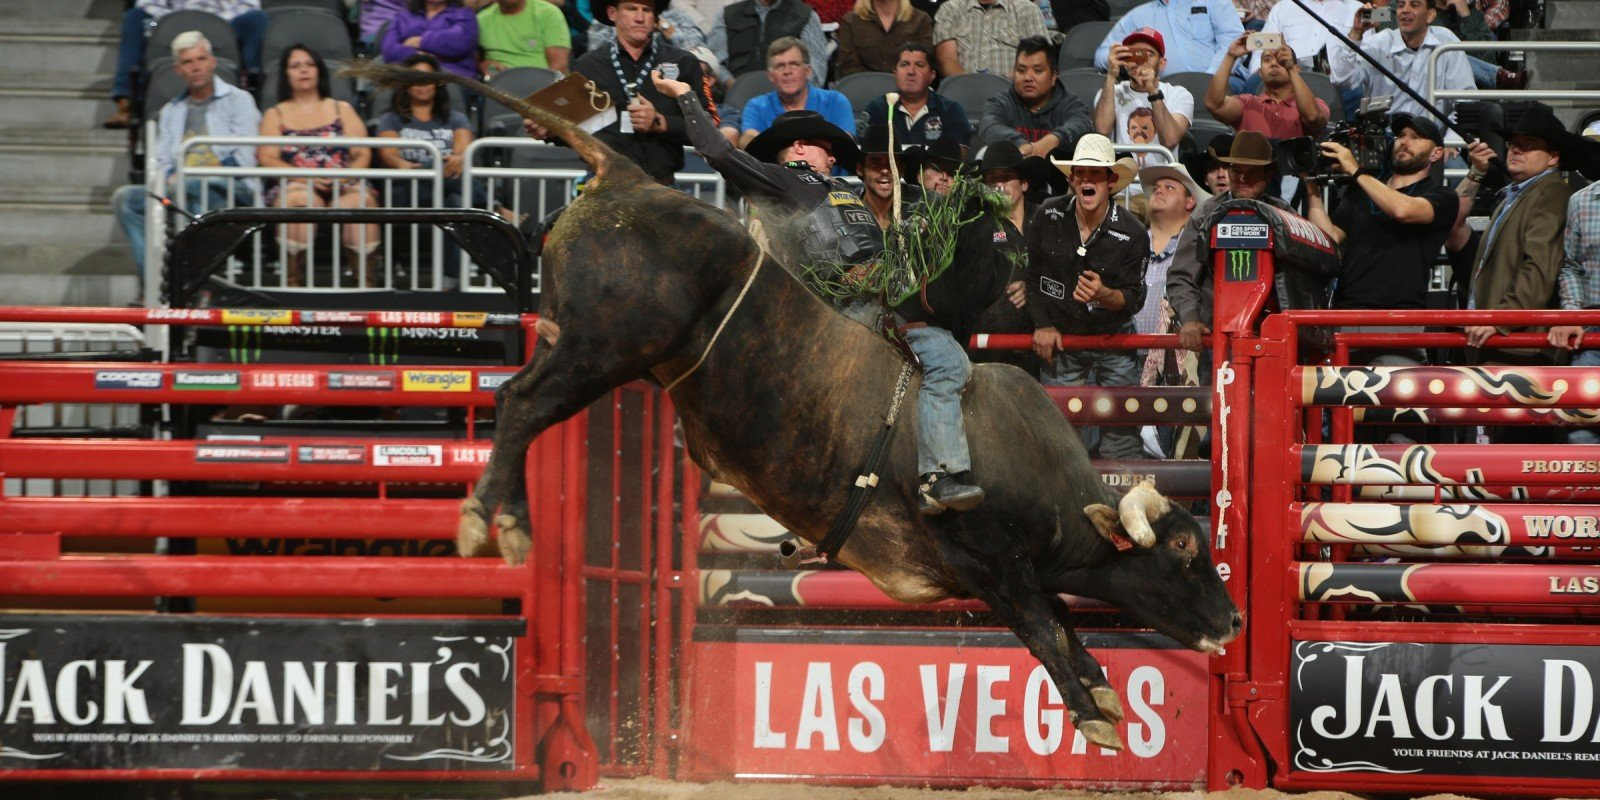 Chase Outlaw rides D&H Cattle Company's Air Marshall for 89.5 during the first round of the Built Ford Tough series PBR World Finals